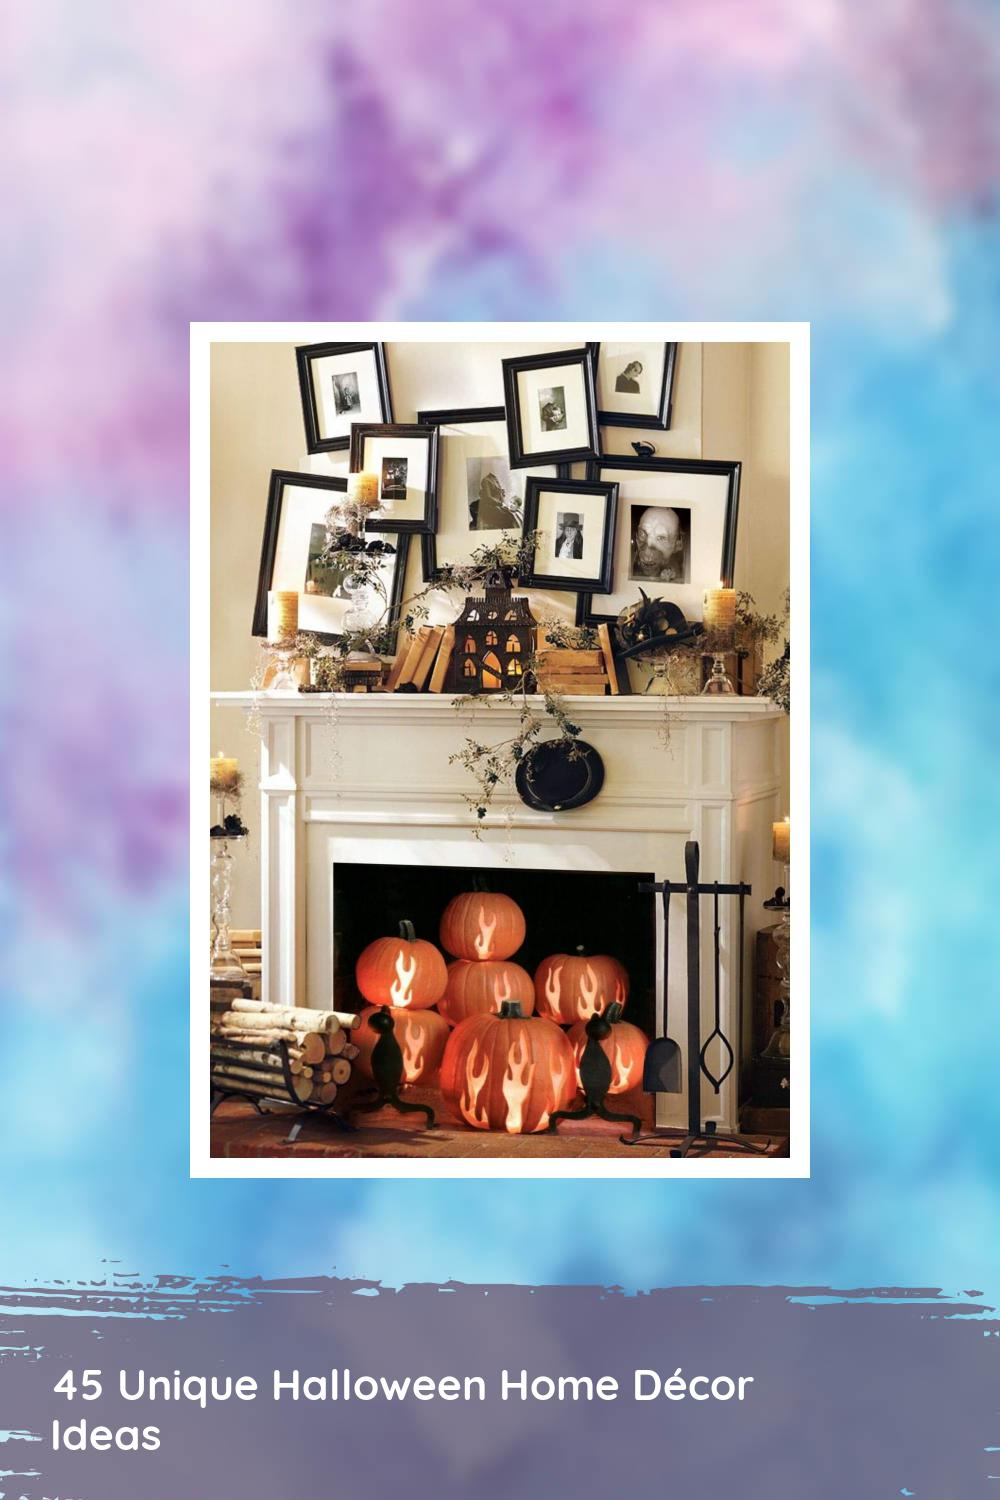 45 Unique Halloween Home Décor Ideas 1